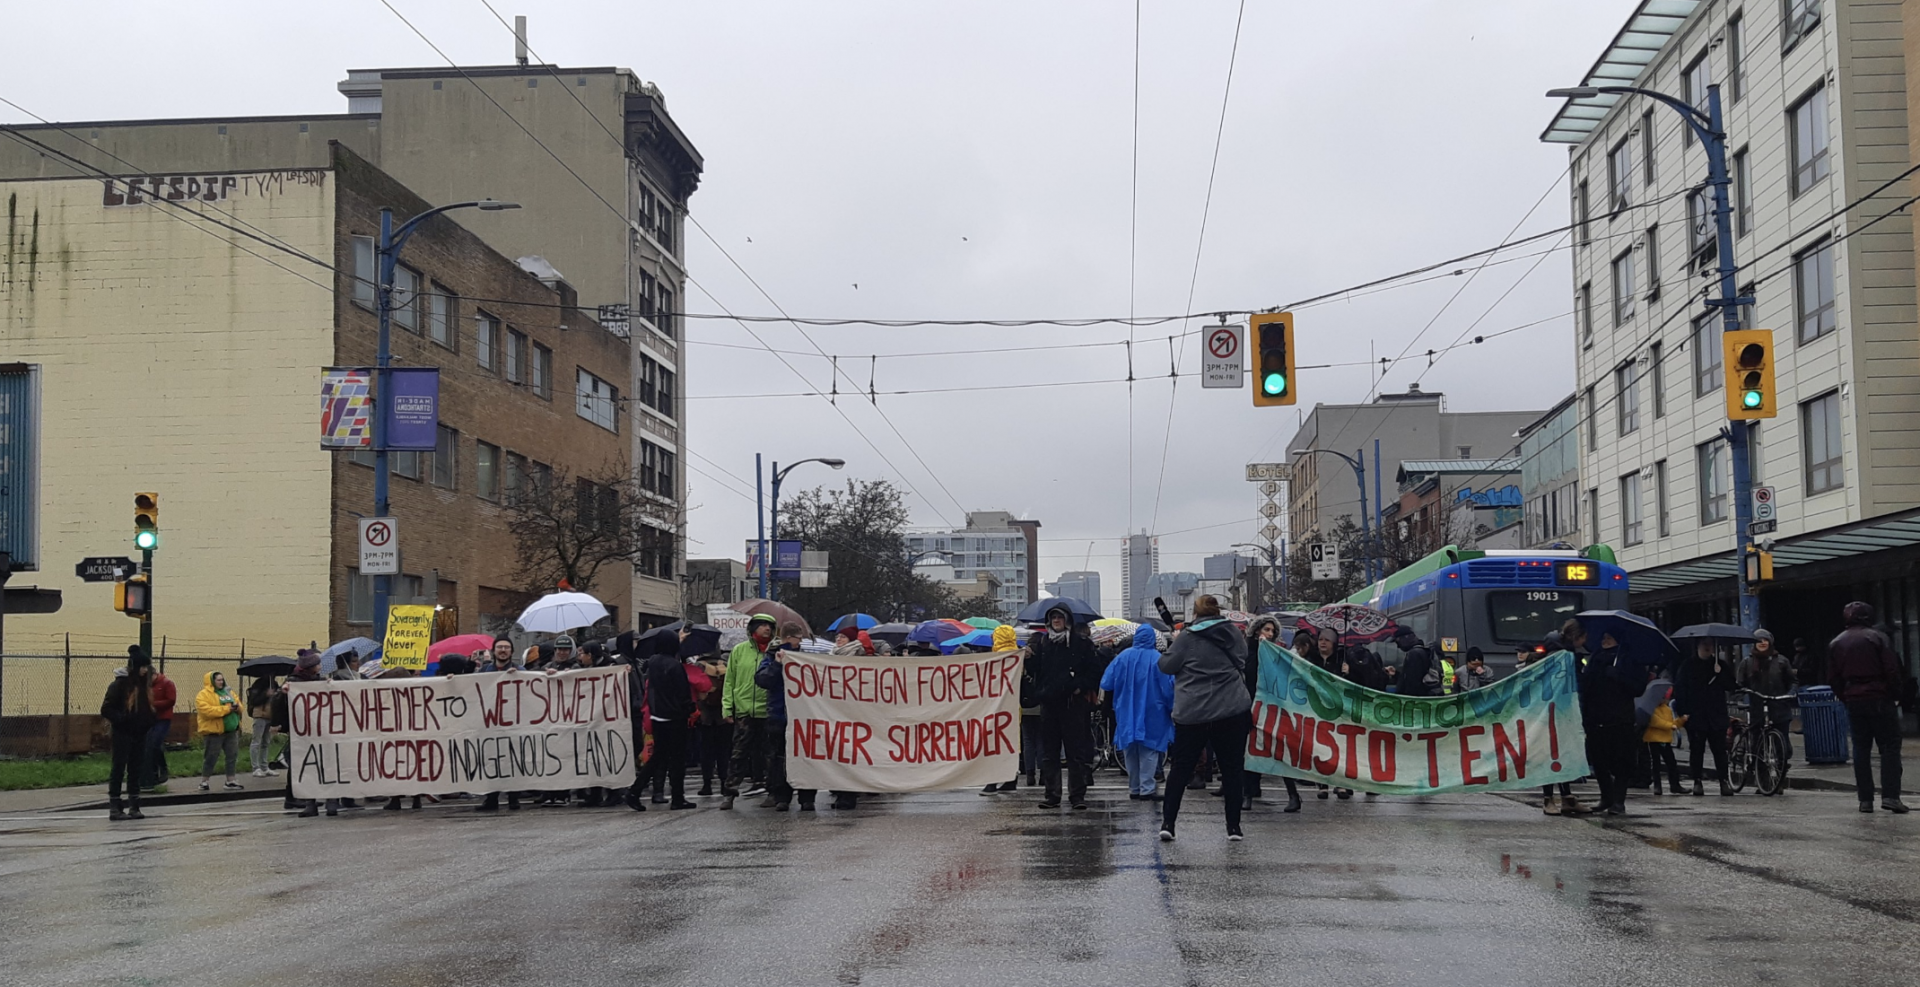 Demonstrations in solidarity with Wet'suwet'en continue in Vancouver today